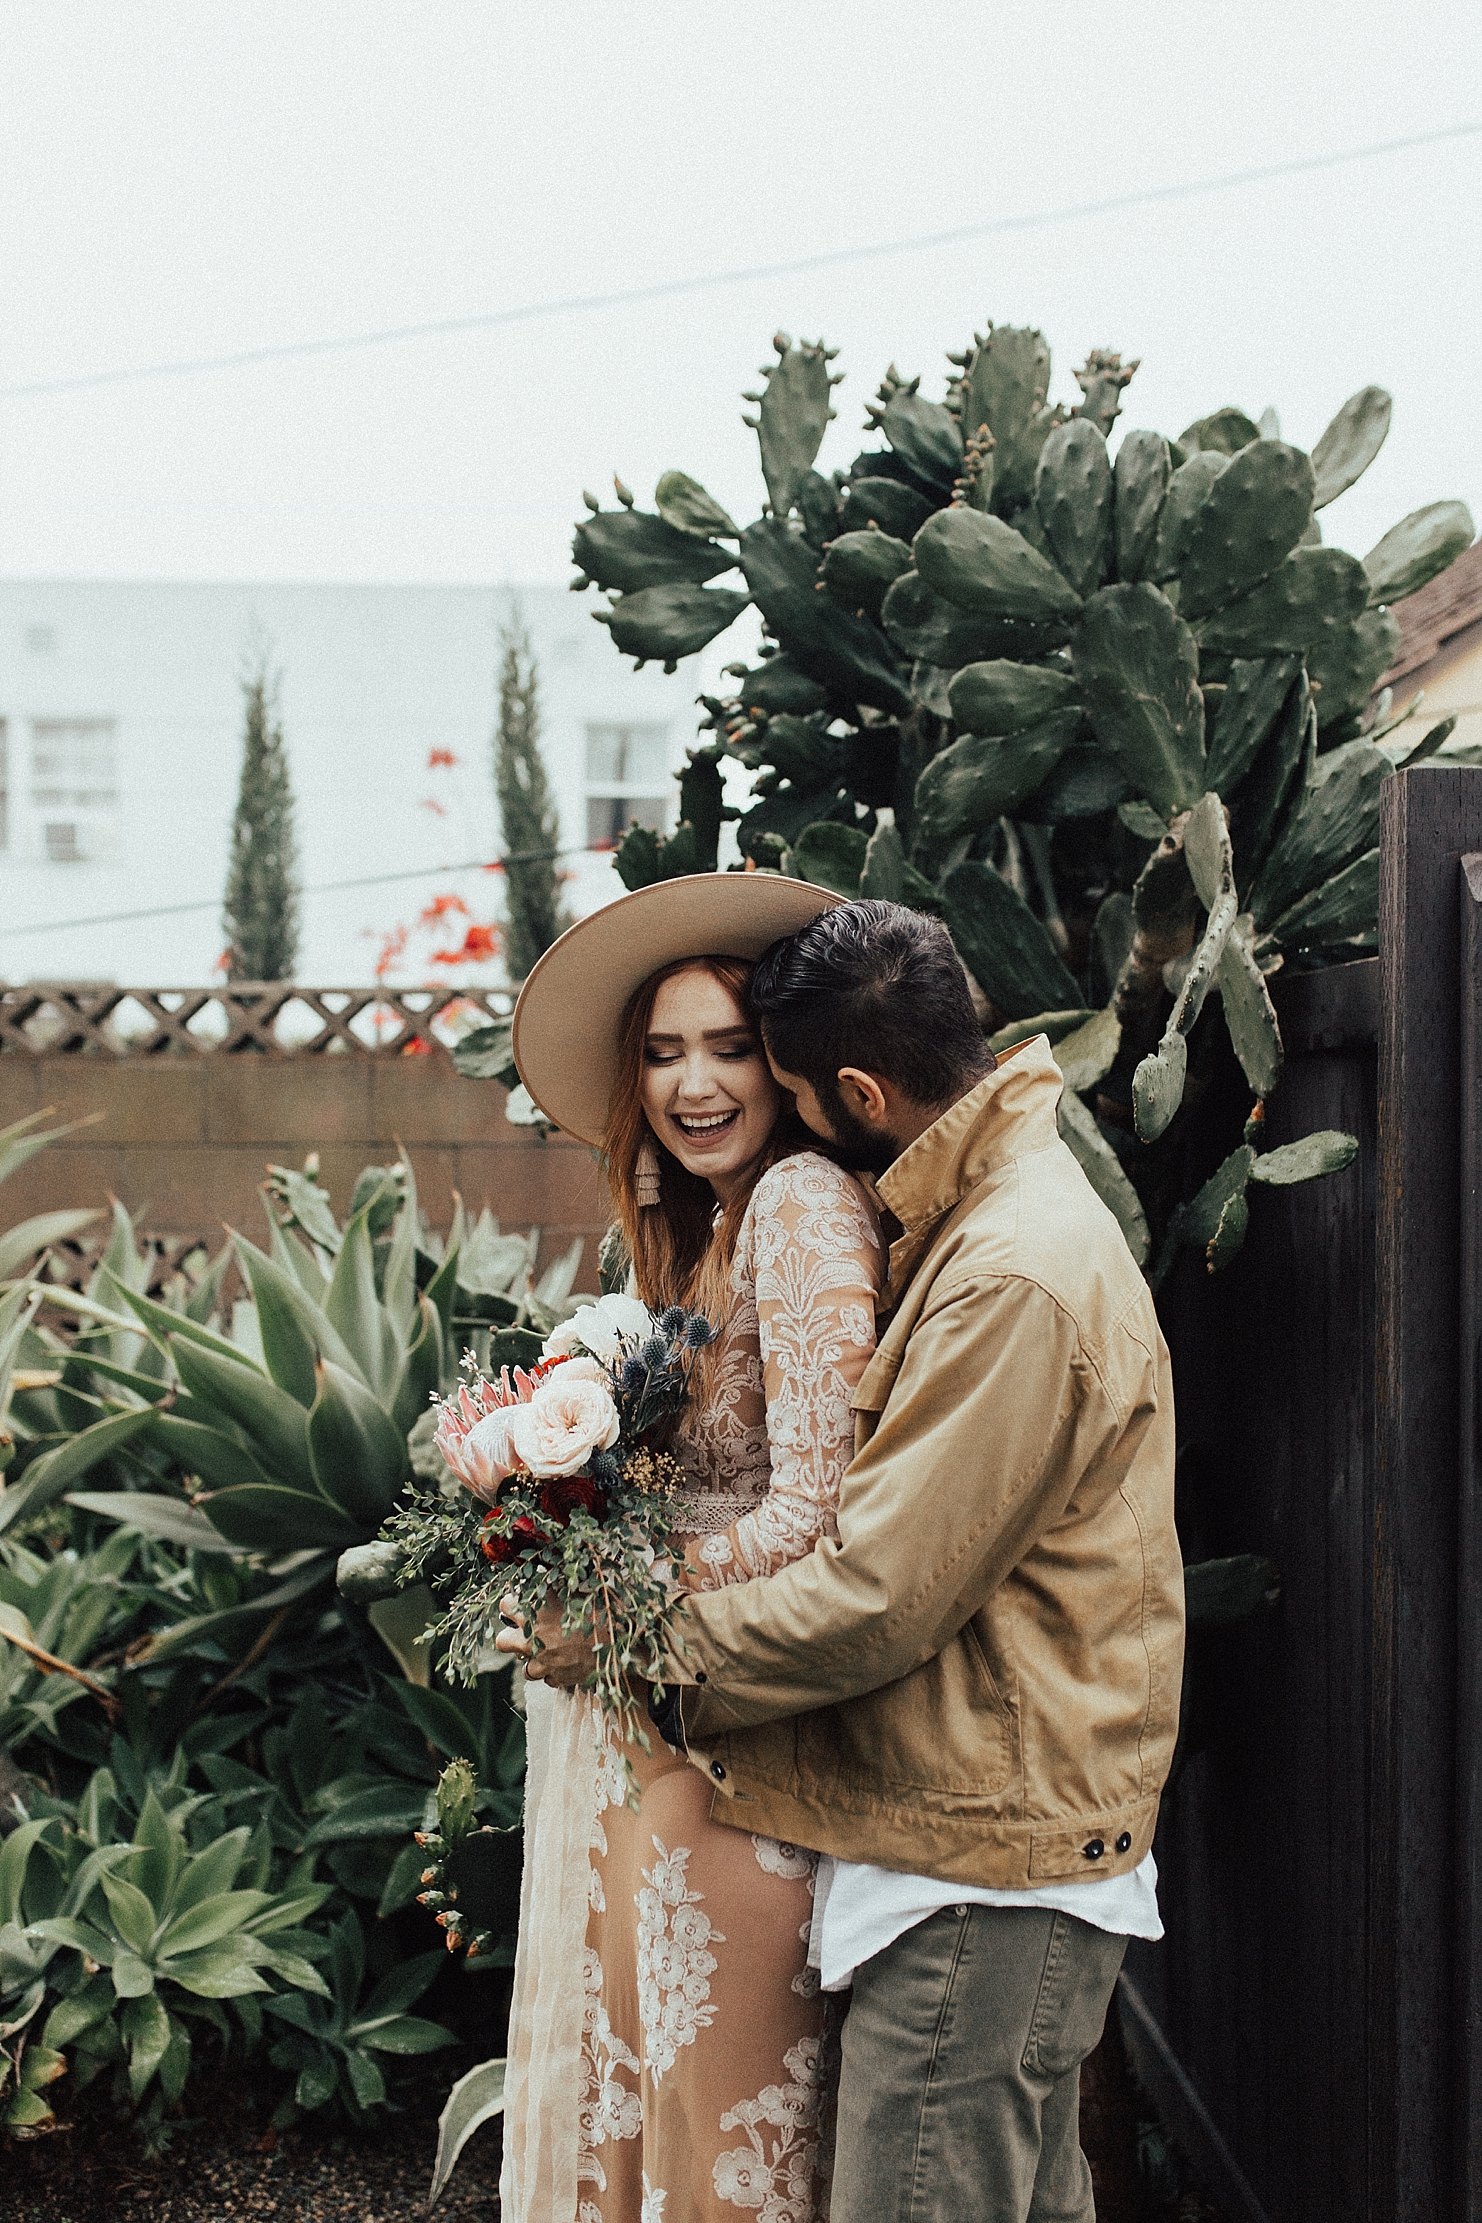 LONG BEACH ELOPEMENT INDIE BRIDE BOHO LOS ANGELES PHOTOGRAPHER RACHEL WAKEFIELD LA ELOPEMENT PHOTOGRAPHER-74.jpg